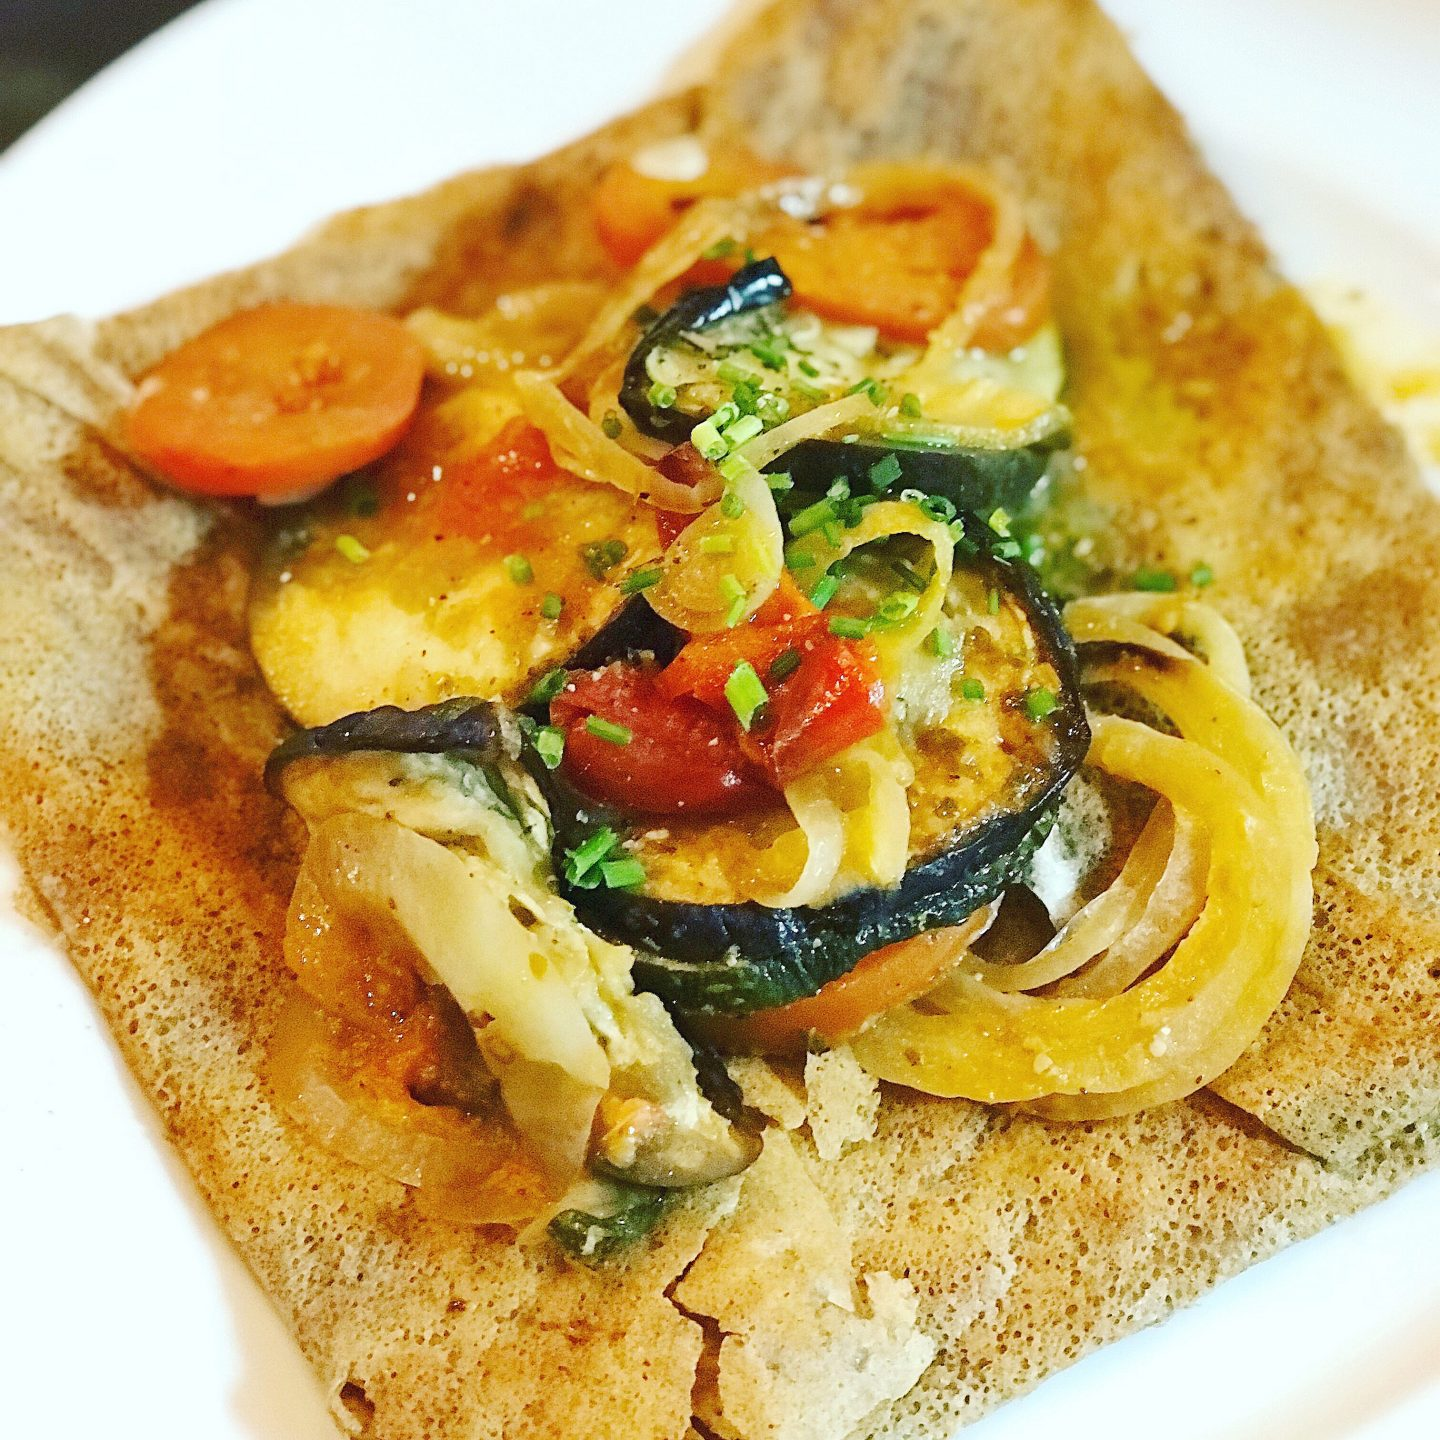 Buckwheat Crepes with Grilled Veggies